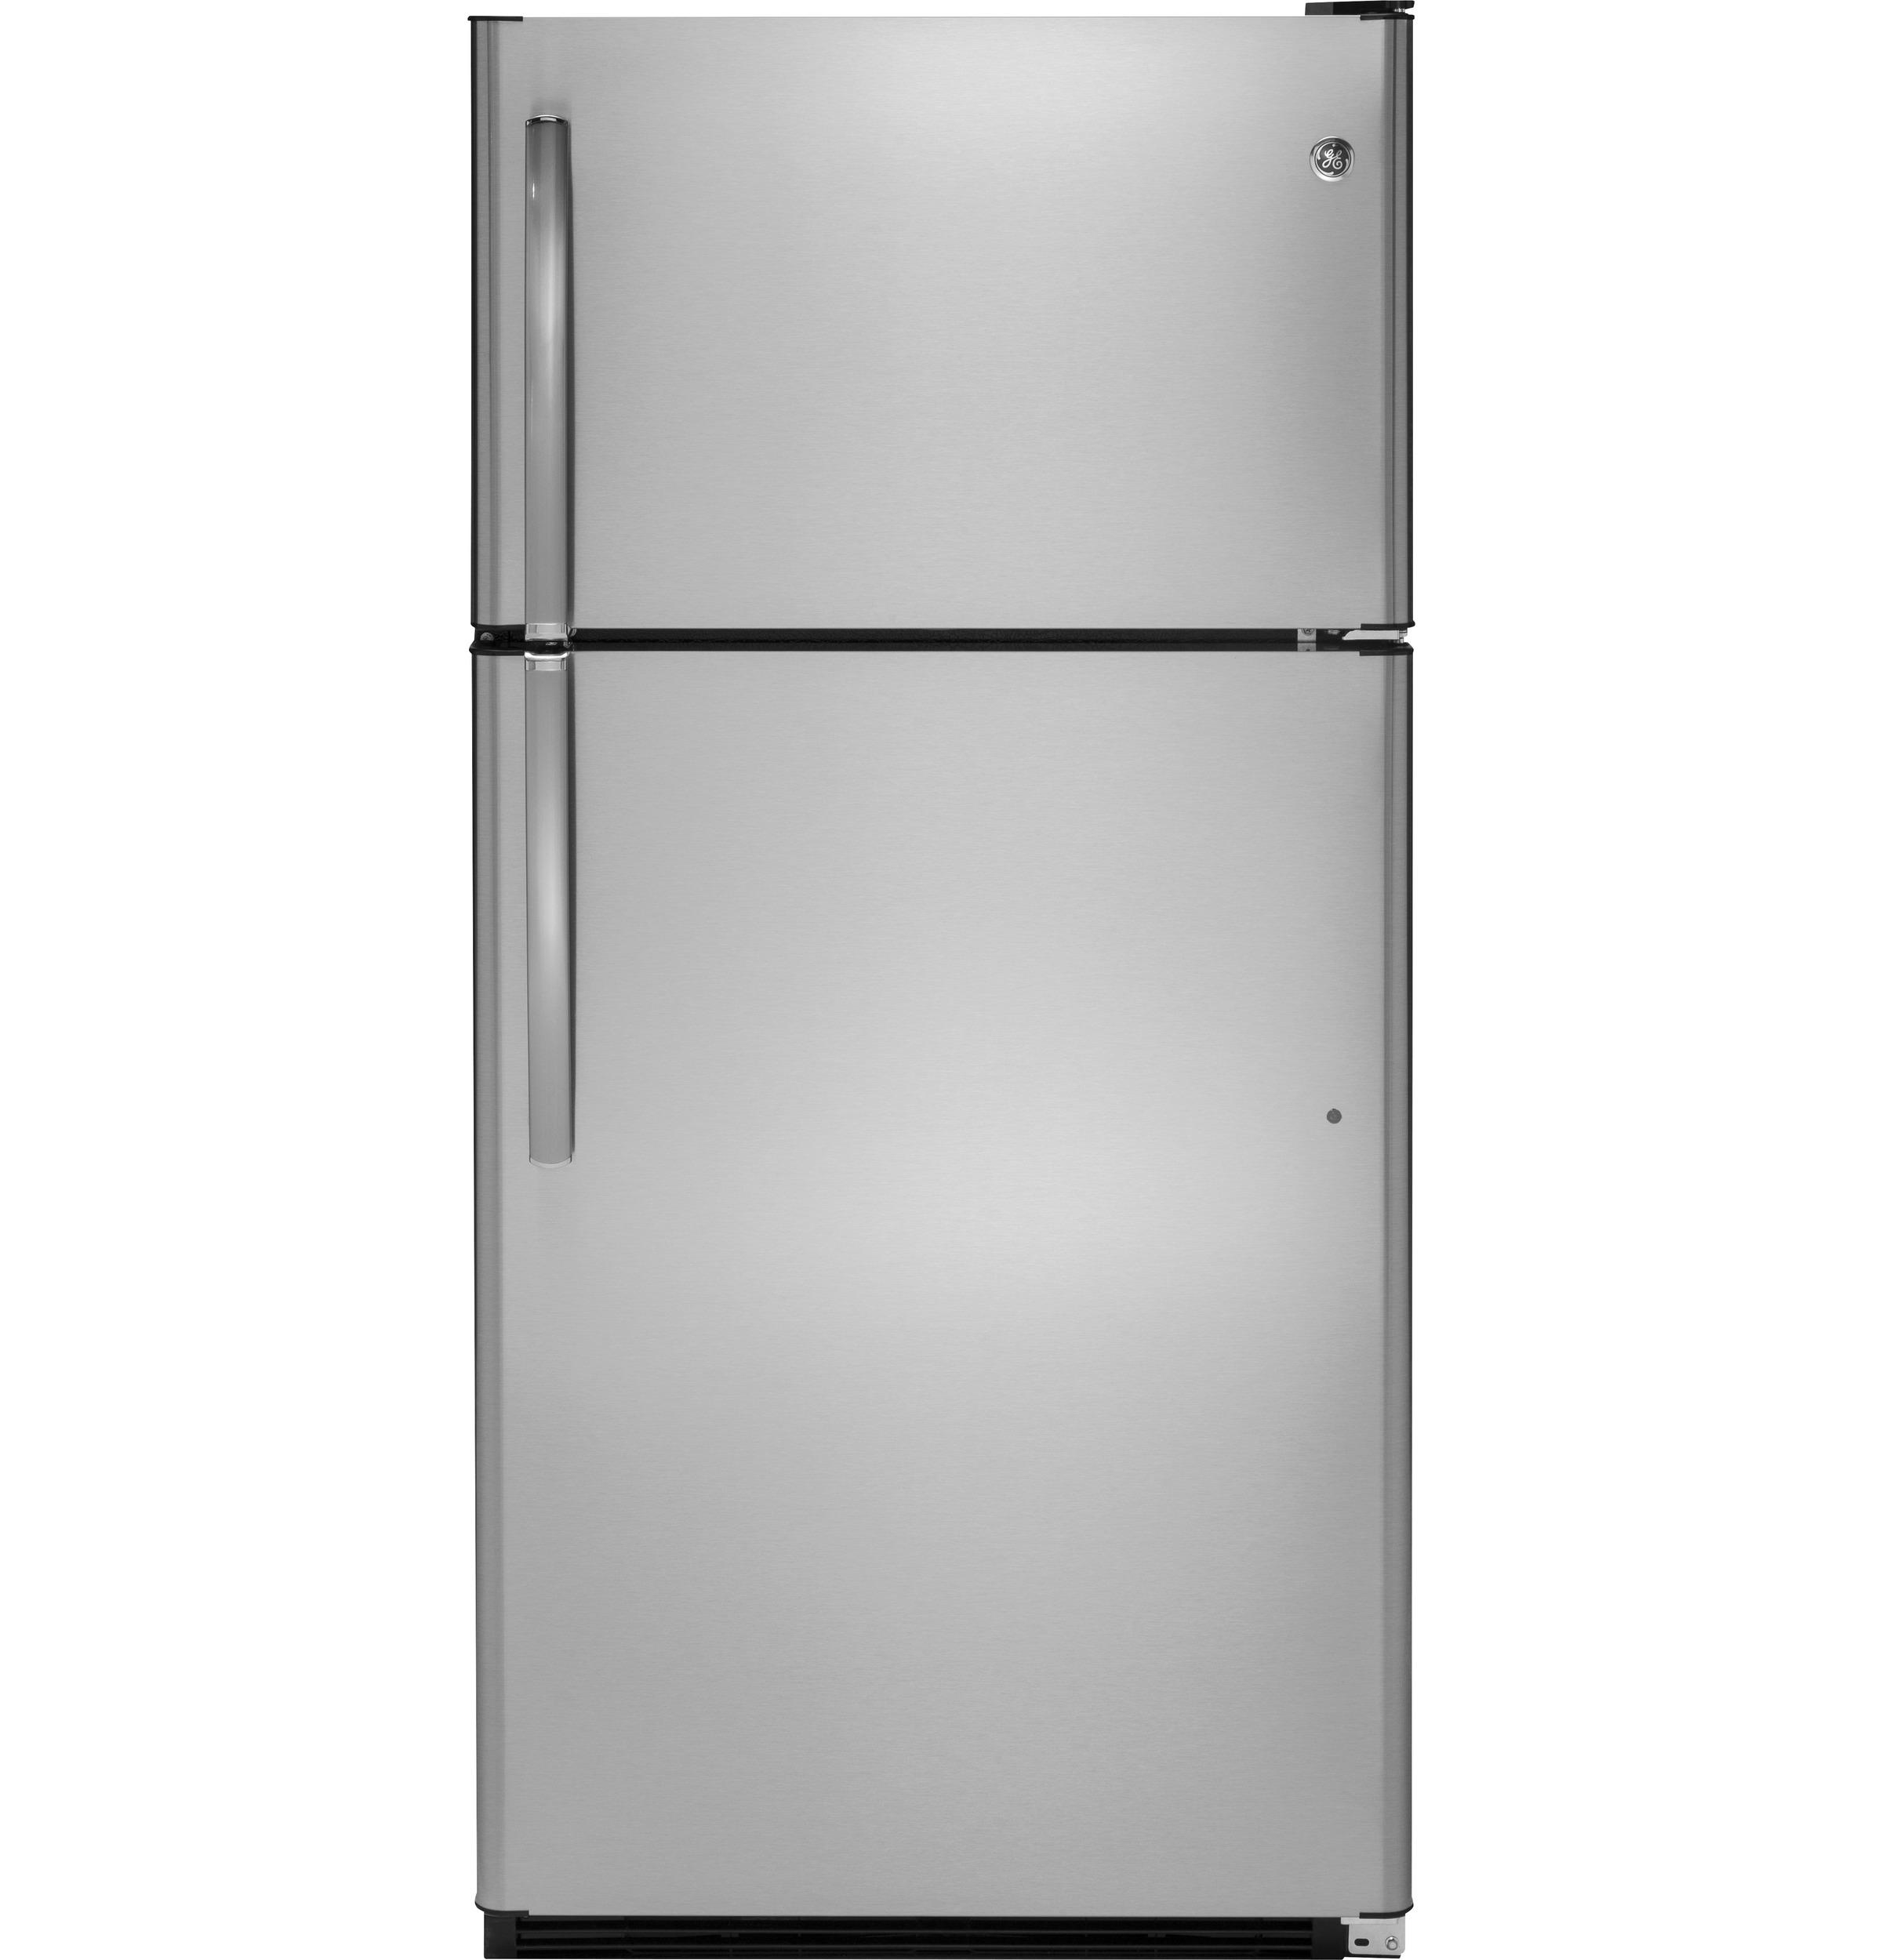 GE(R) 20.8 Cu. Ft. Top-Freezer Refrigerator